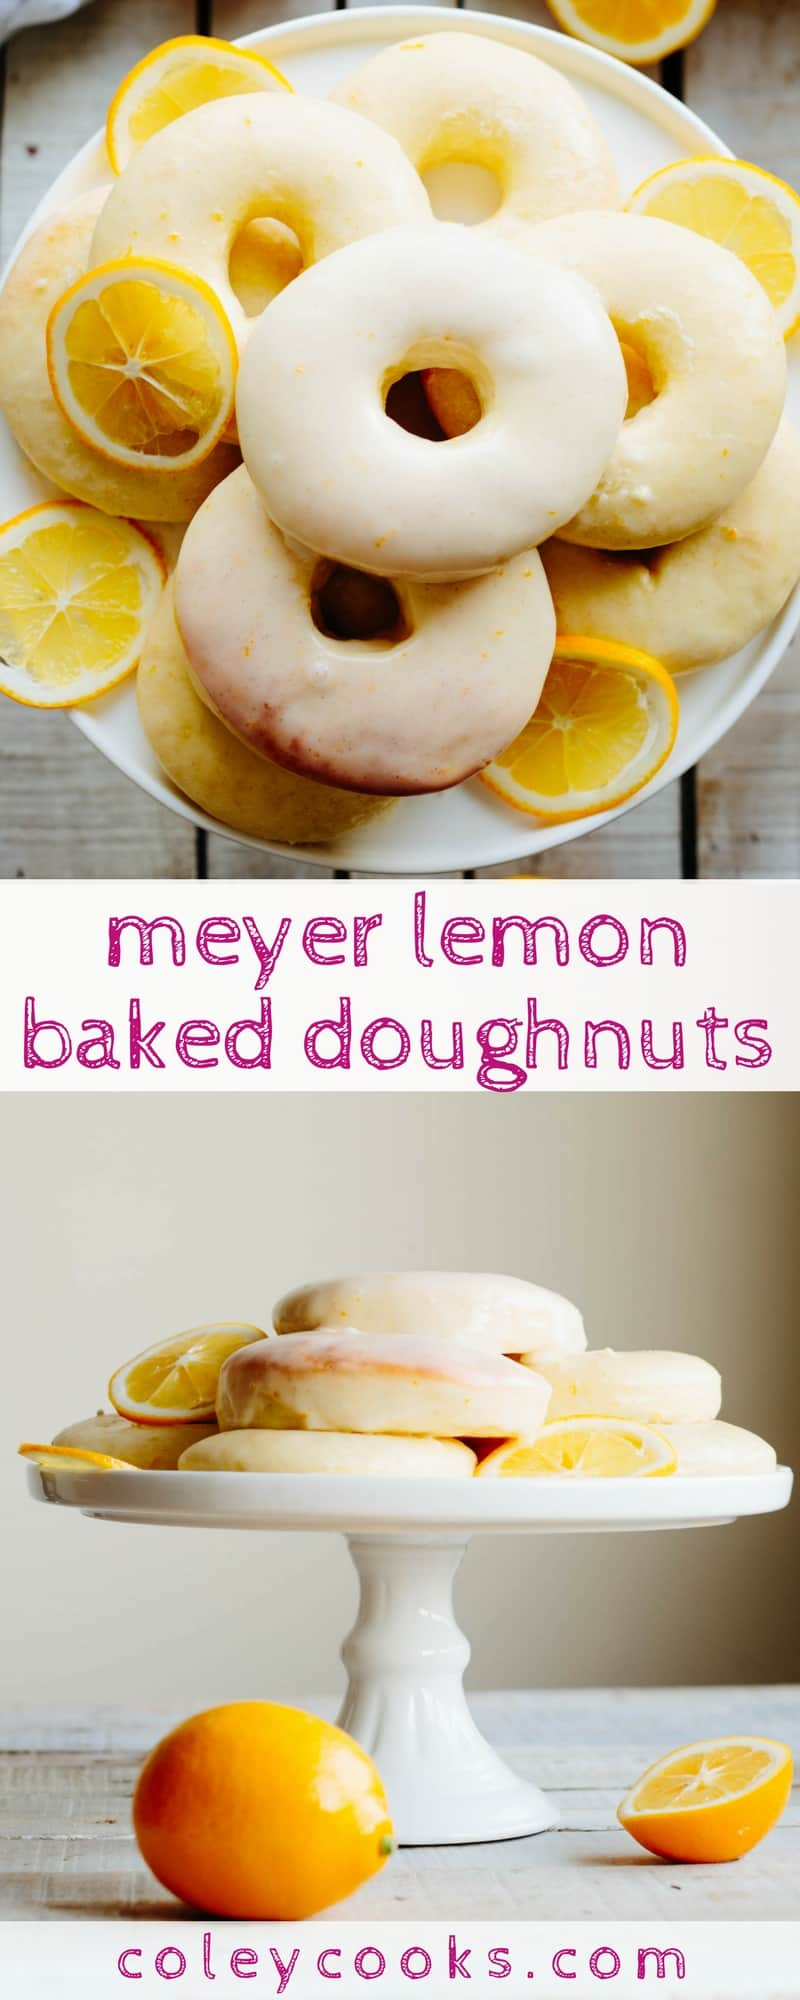 MEYER LEMON BAKED DOUGHNUTS | Easy recipe for yeasted baked doughnuts with Meyer lemon glaze! Perfect for a lazy weekend breakfast or brunch, bridal showers and baby showers! | ColeyCooks.com